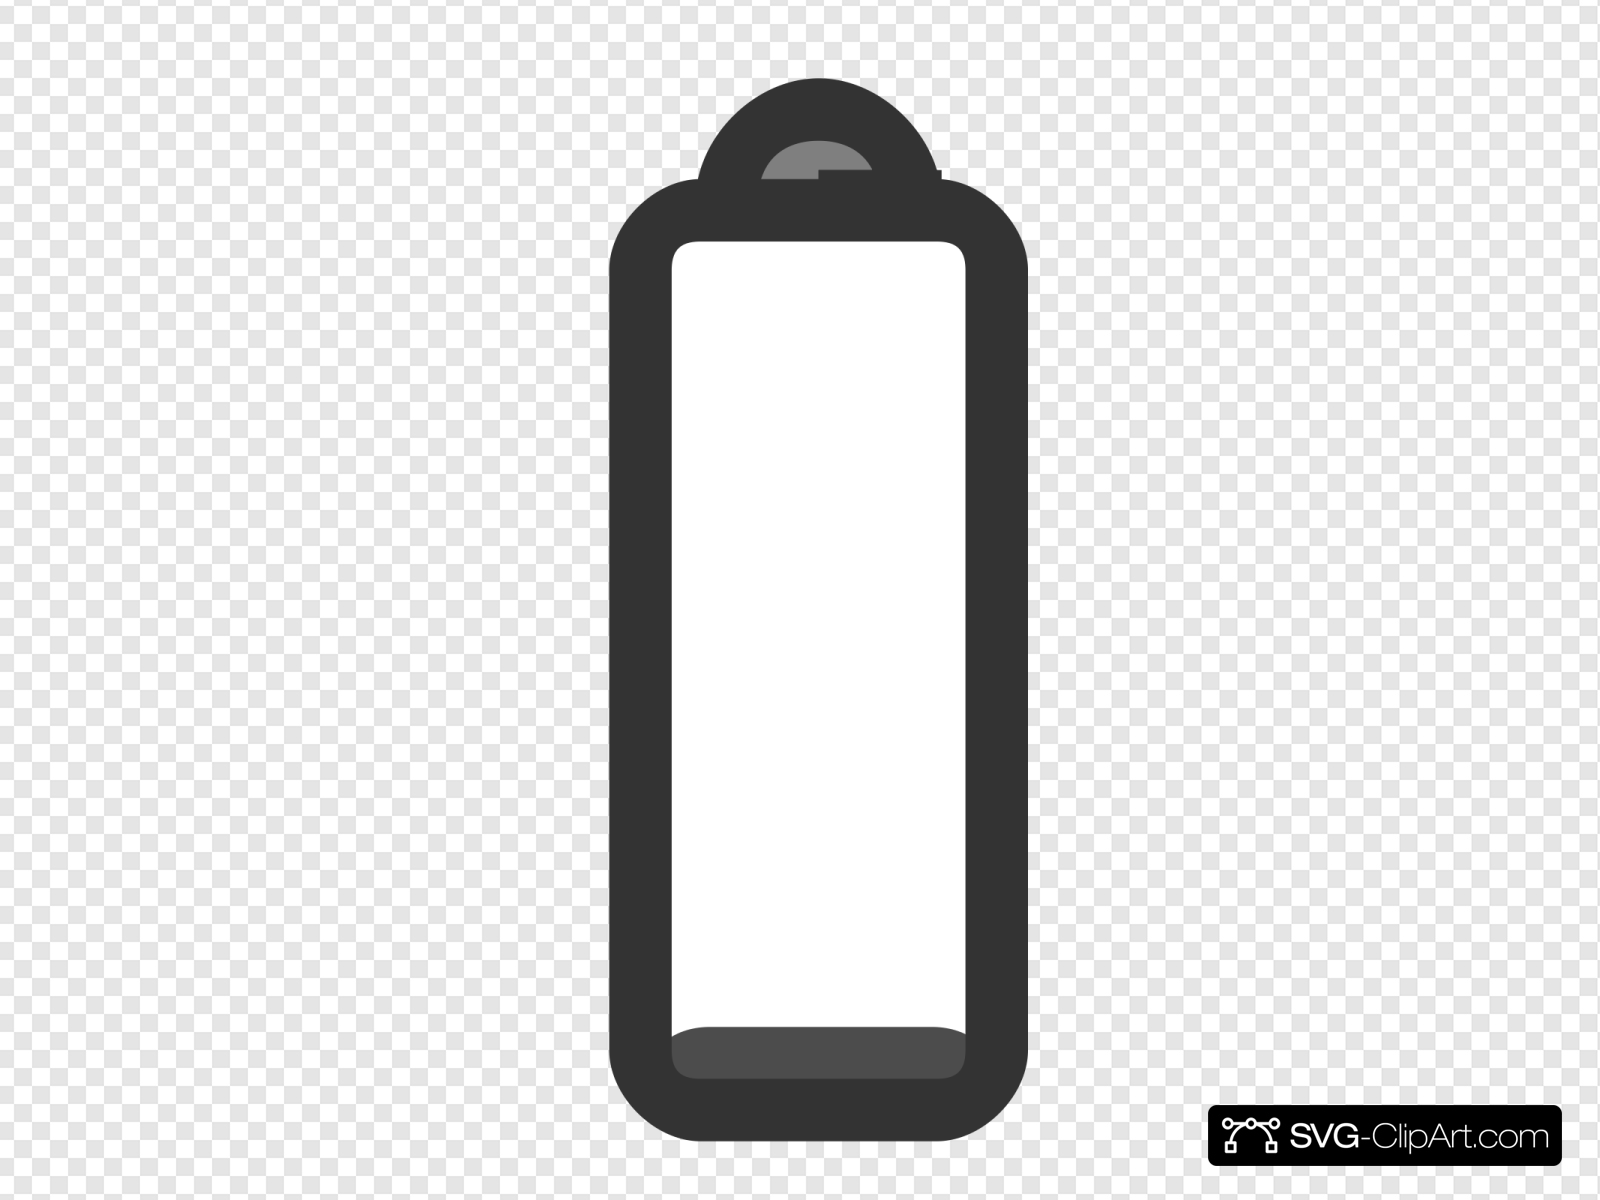 Laptop No Charge Clip art, Icon and SVG.